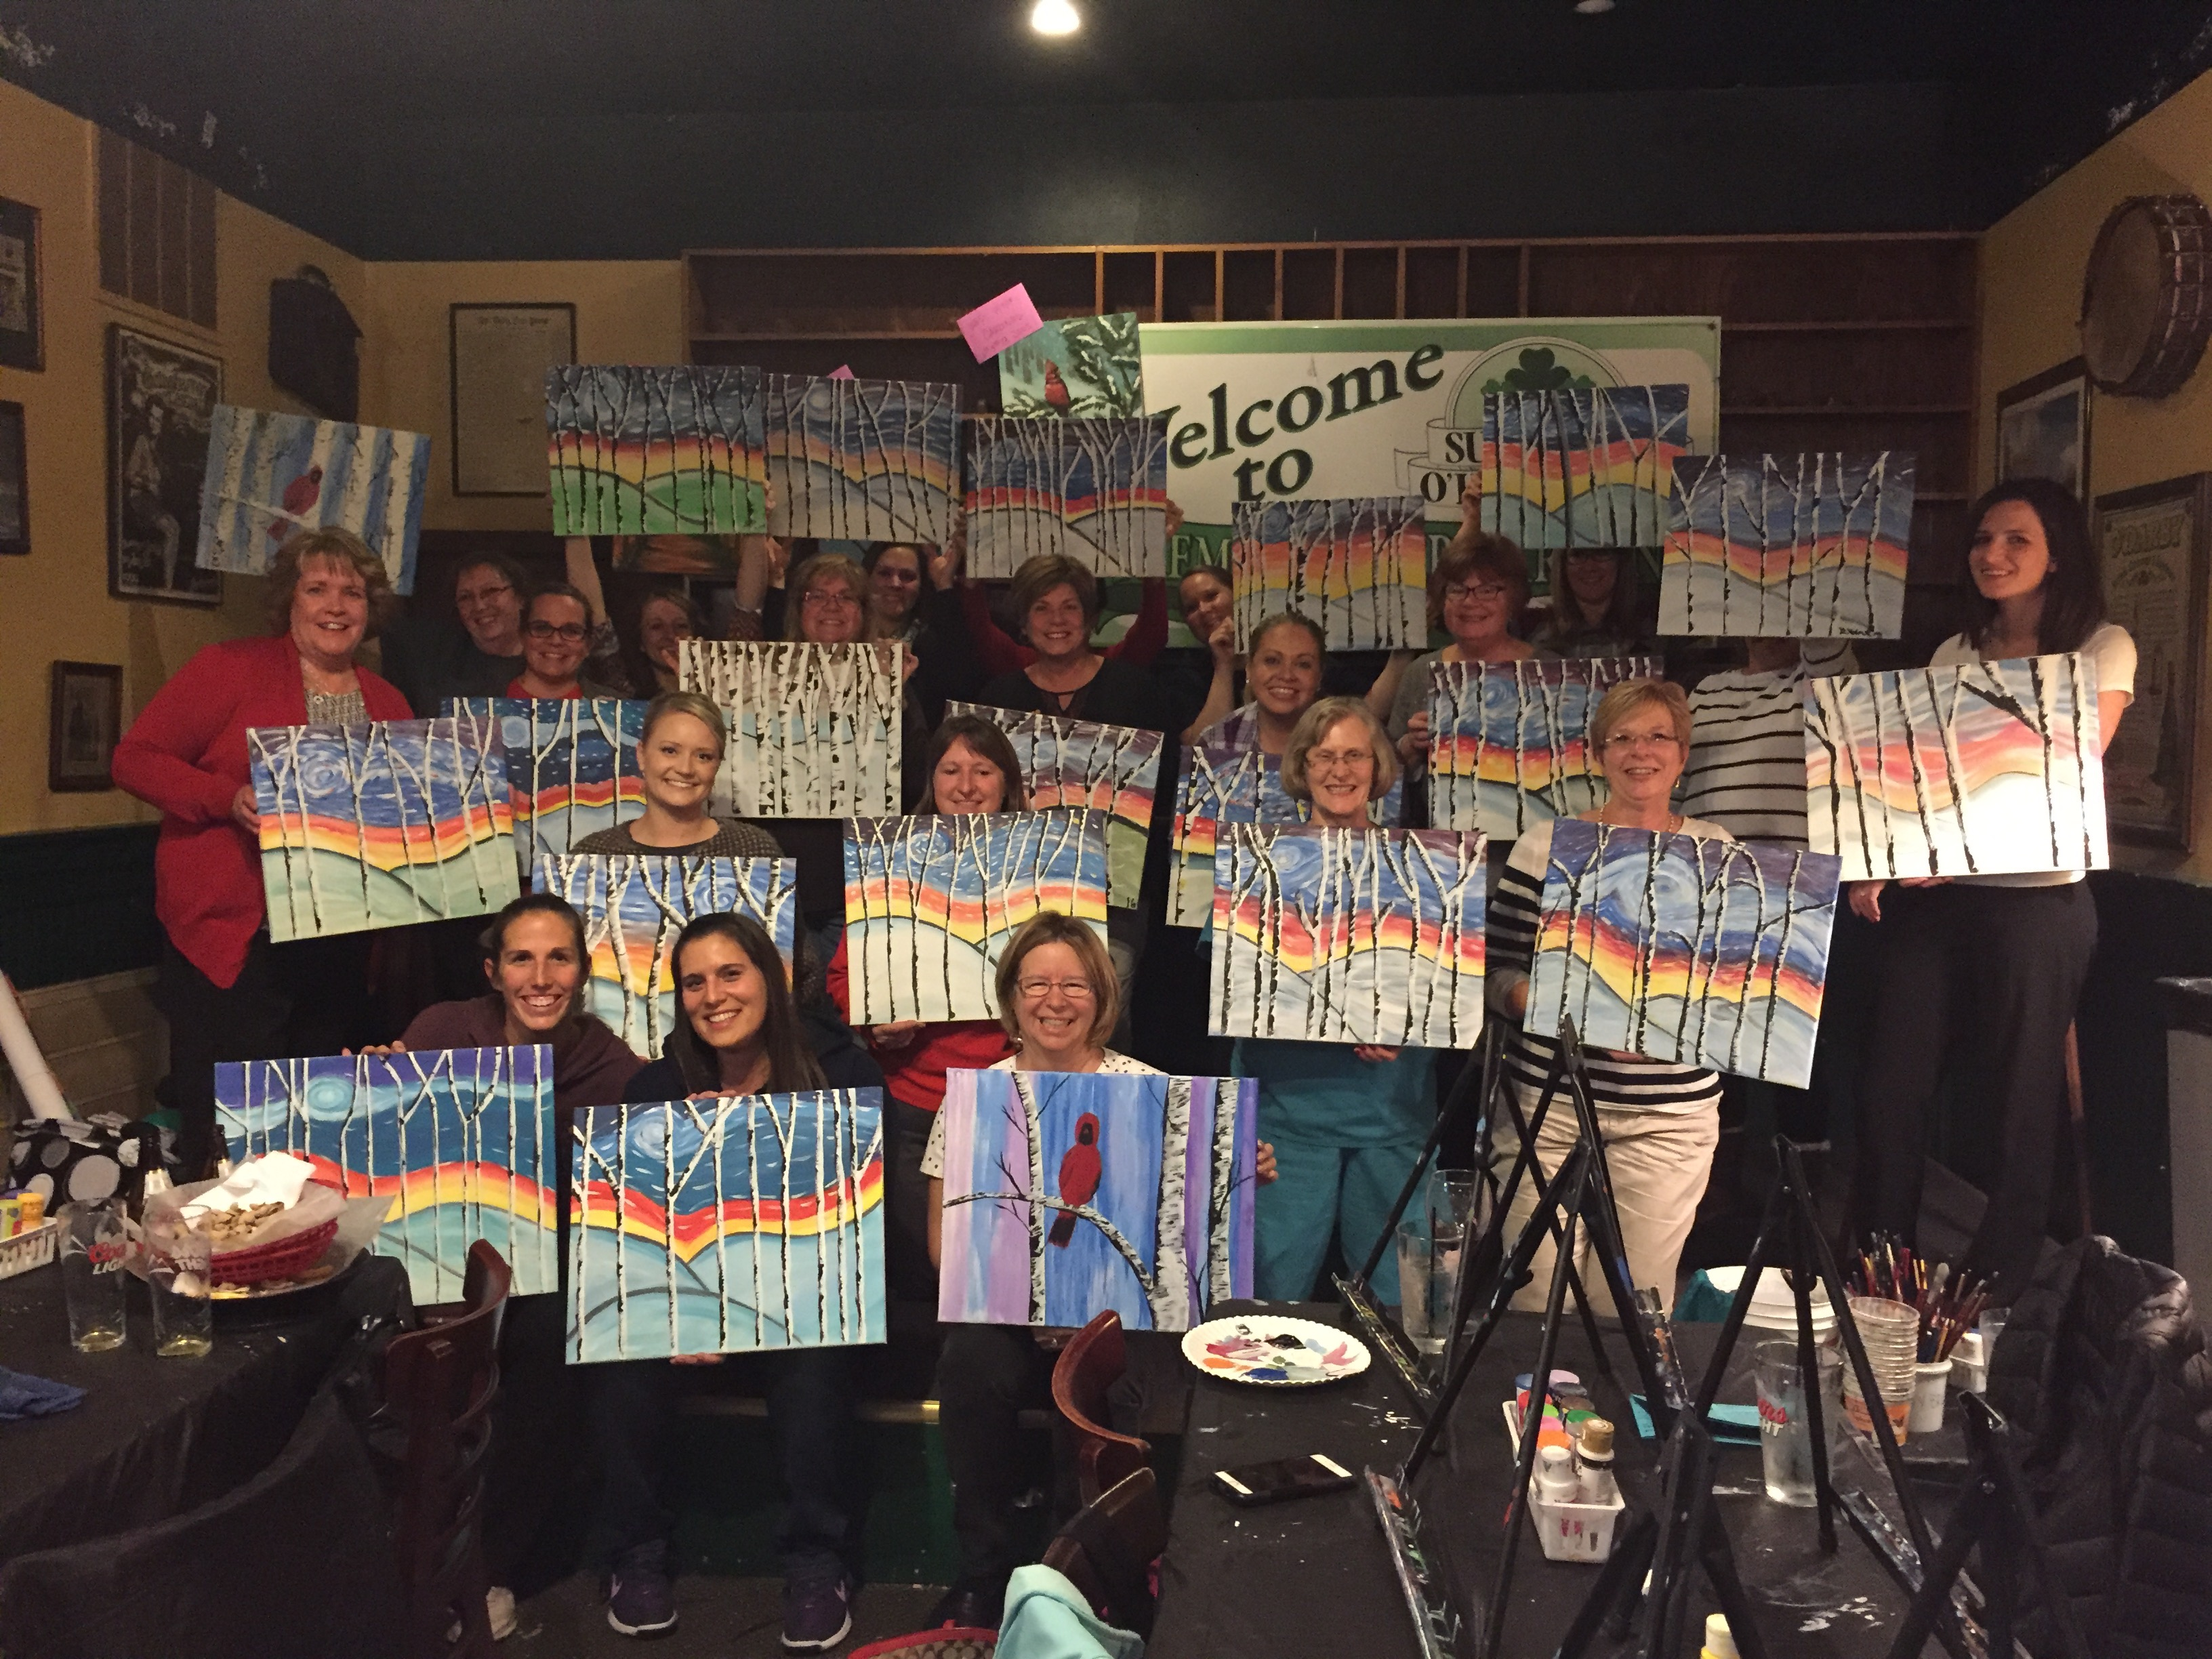 Turner School District got really creative painting Birch Trees at Suds! 11/19/15